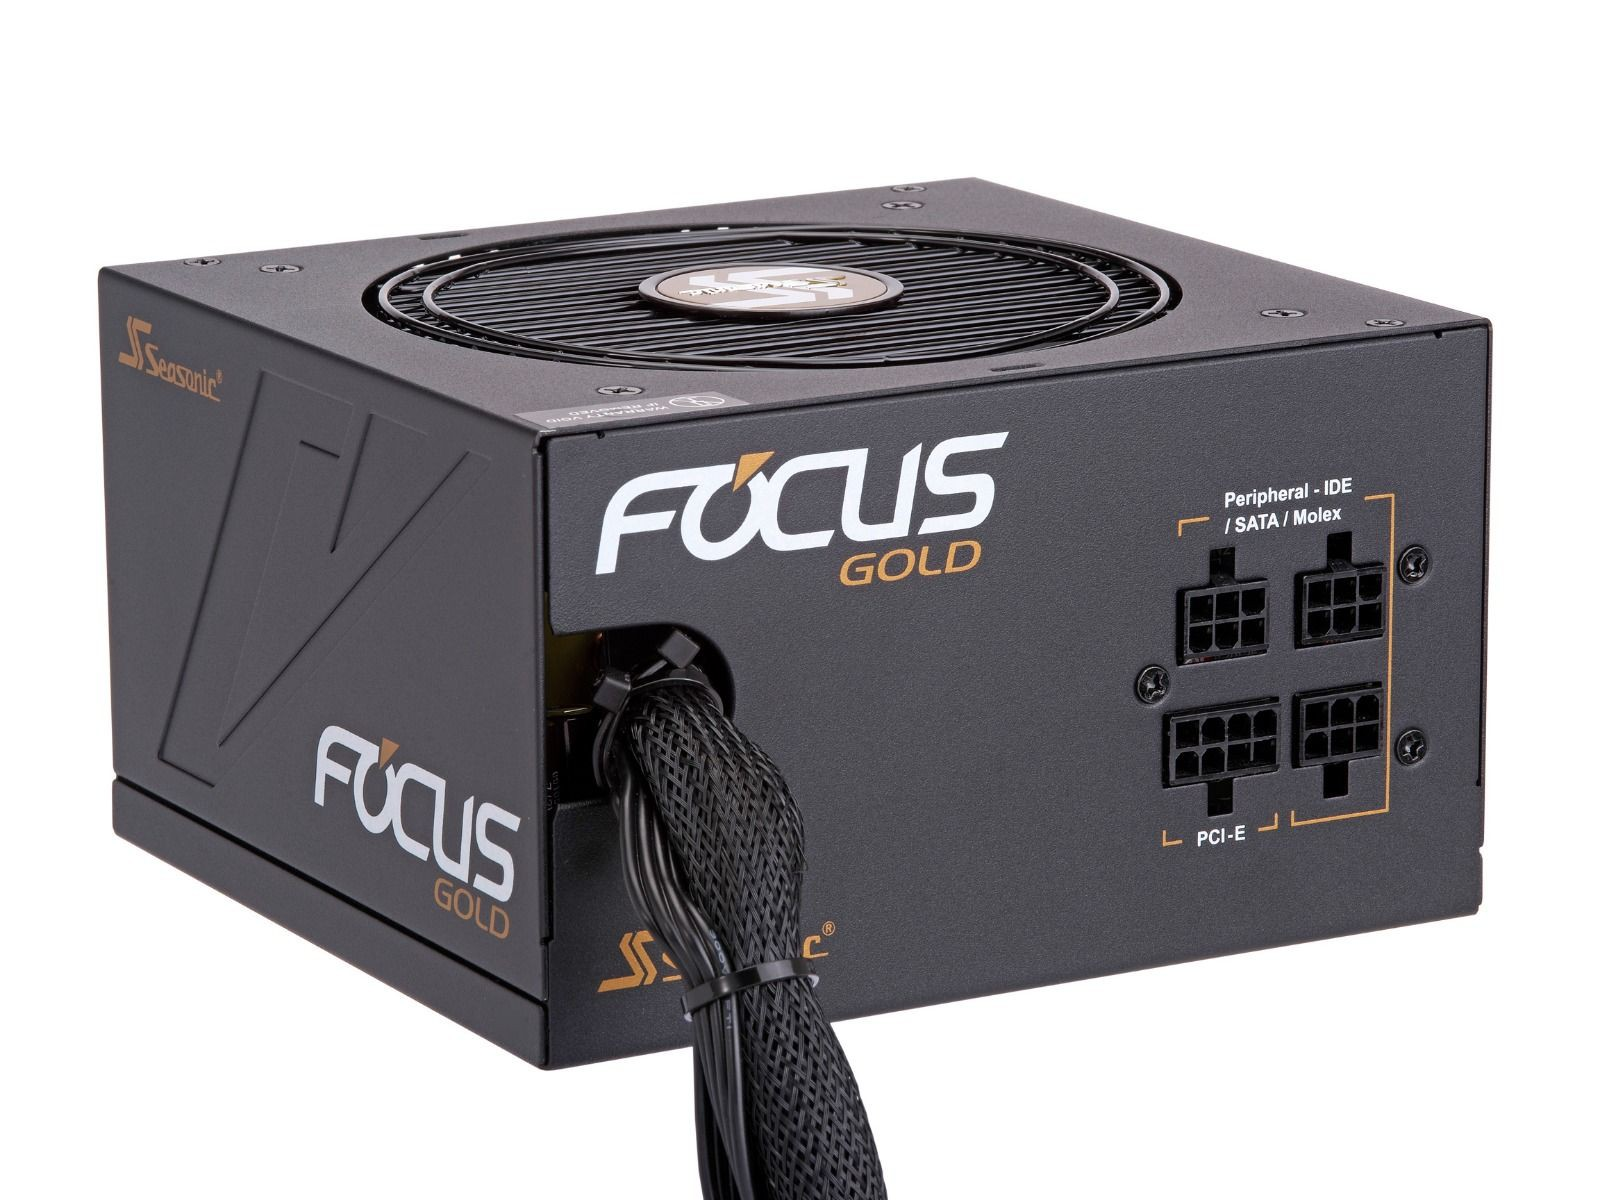 Блок питания 450W Seasonic FOCUS 450 Gold (SSR-450FM) (120мм, 24+8pin, 2x6/8pin, 3хSATA, 4xMolex, 80 PLUS Gold)